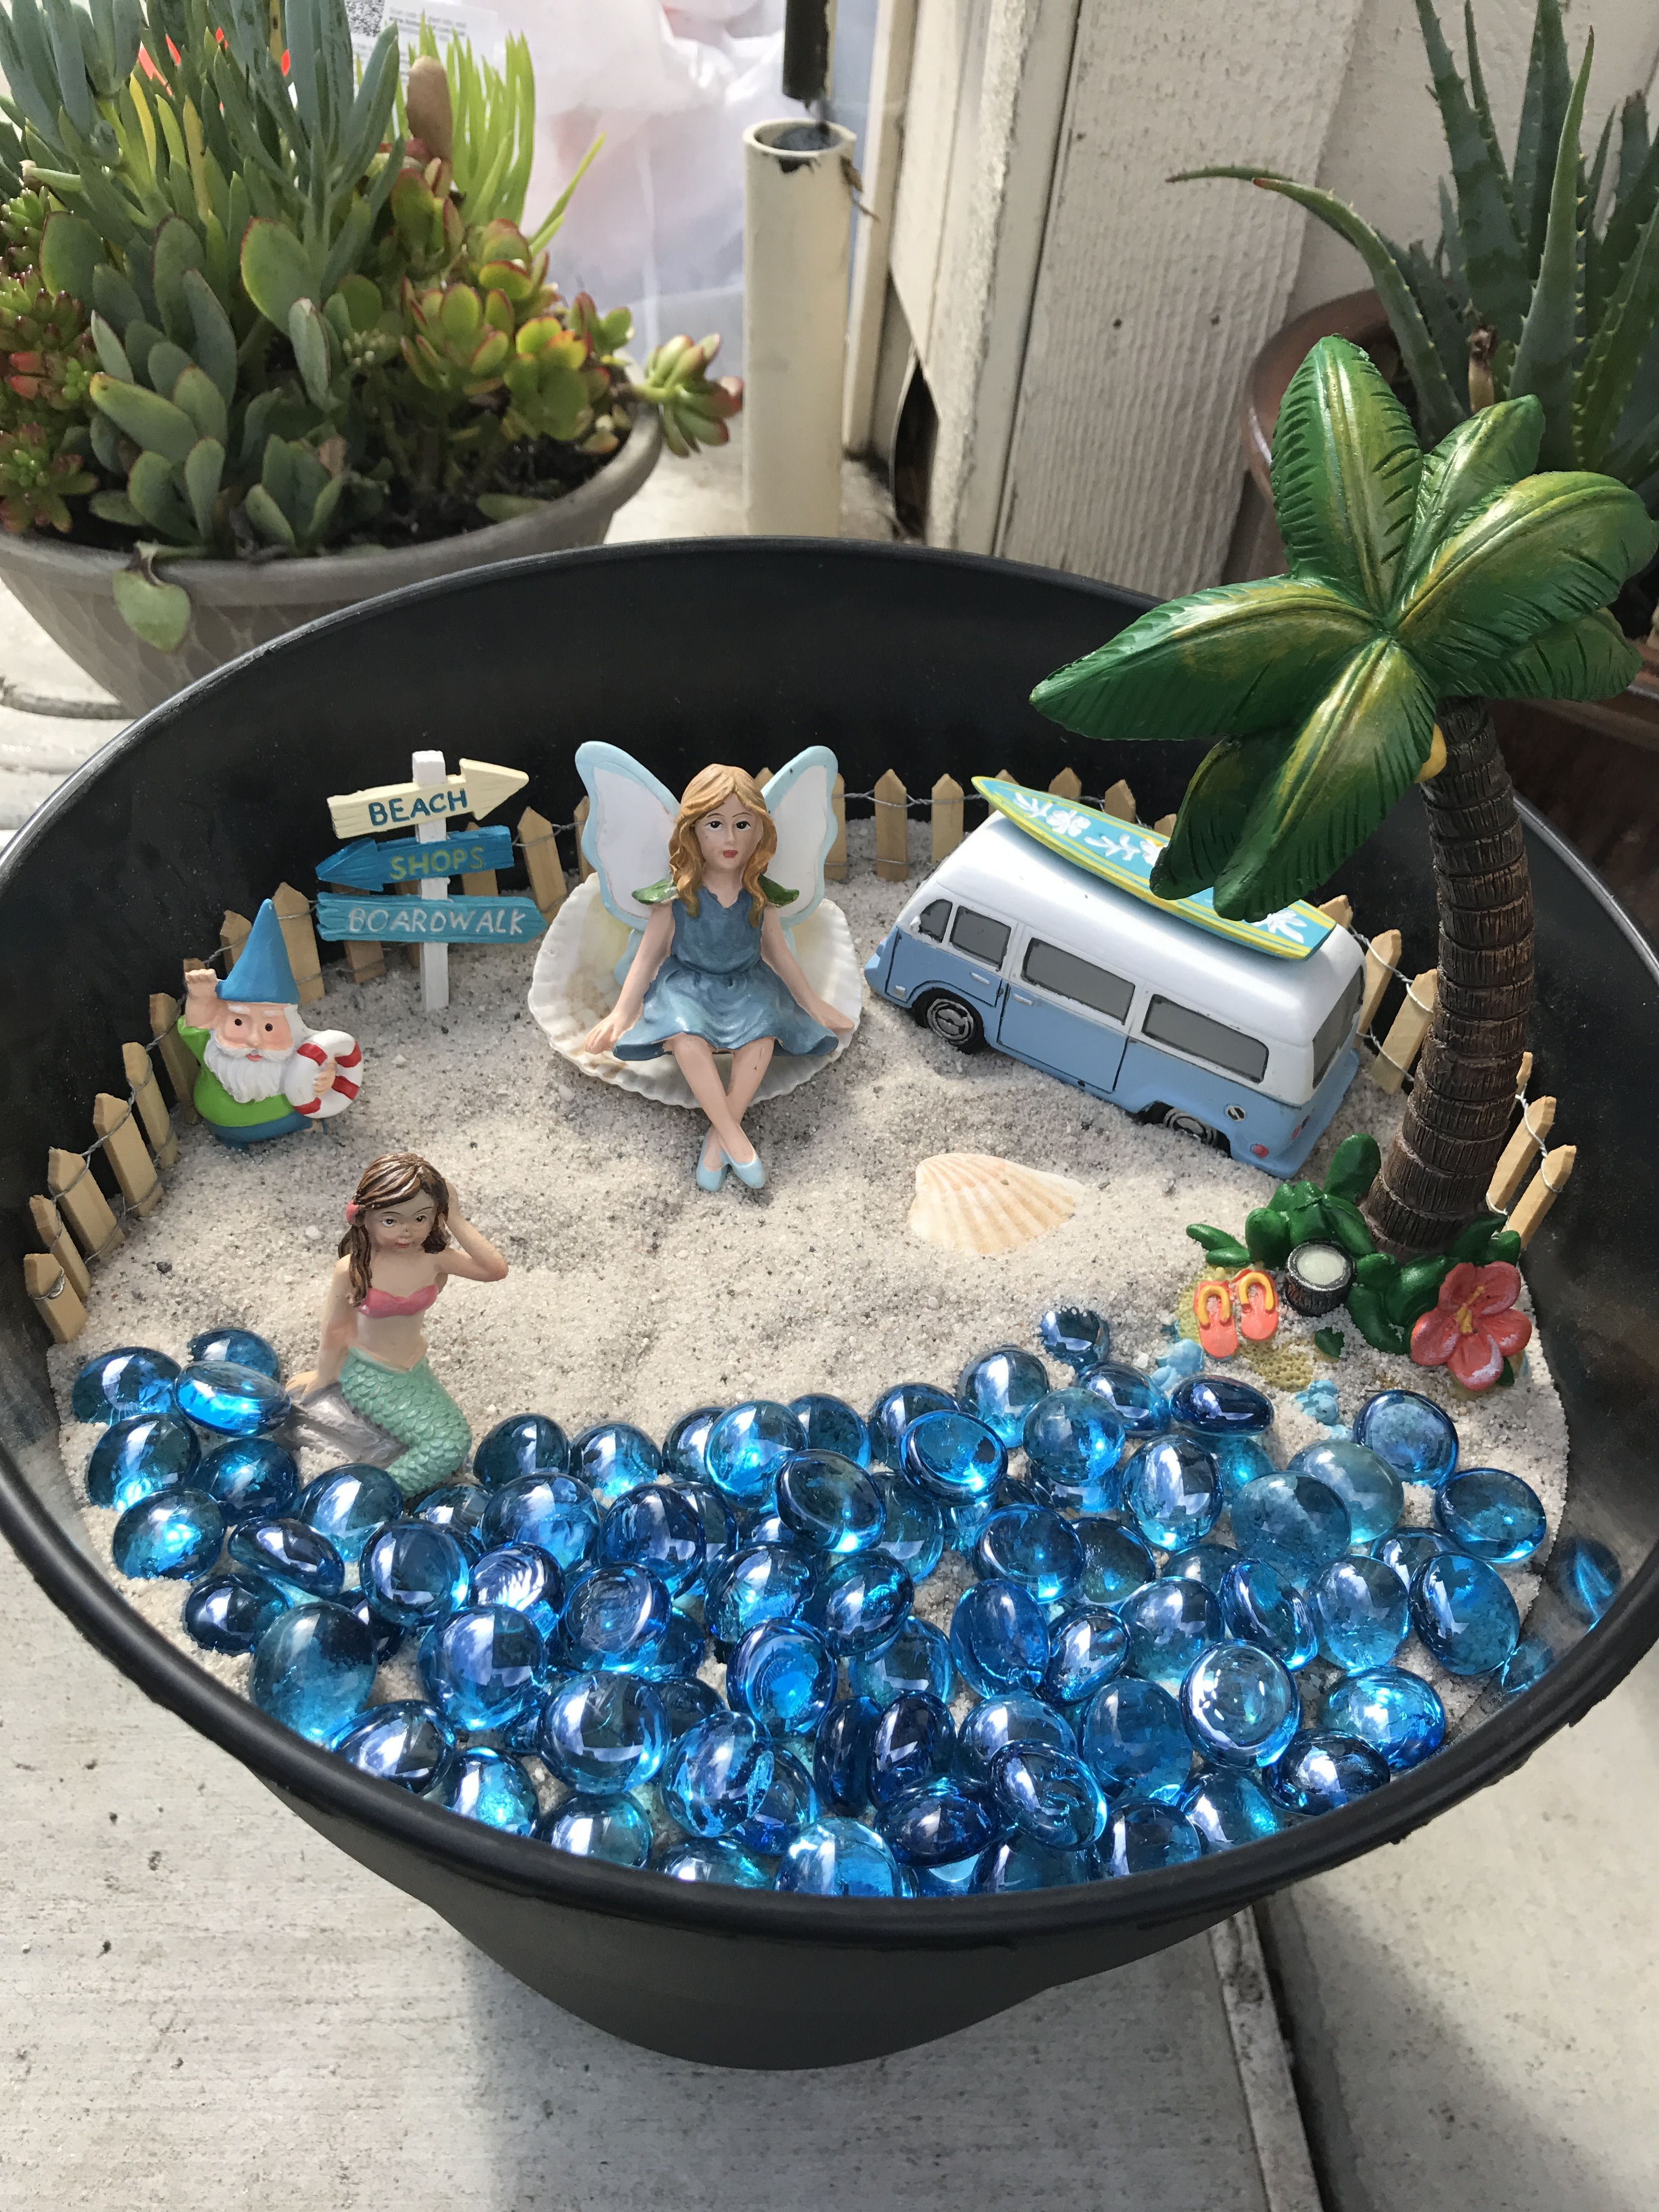 Beach Fairy Garden All Accessories From Michaels Gems The Dollar Sand Bucket Home Depot So Adorable